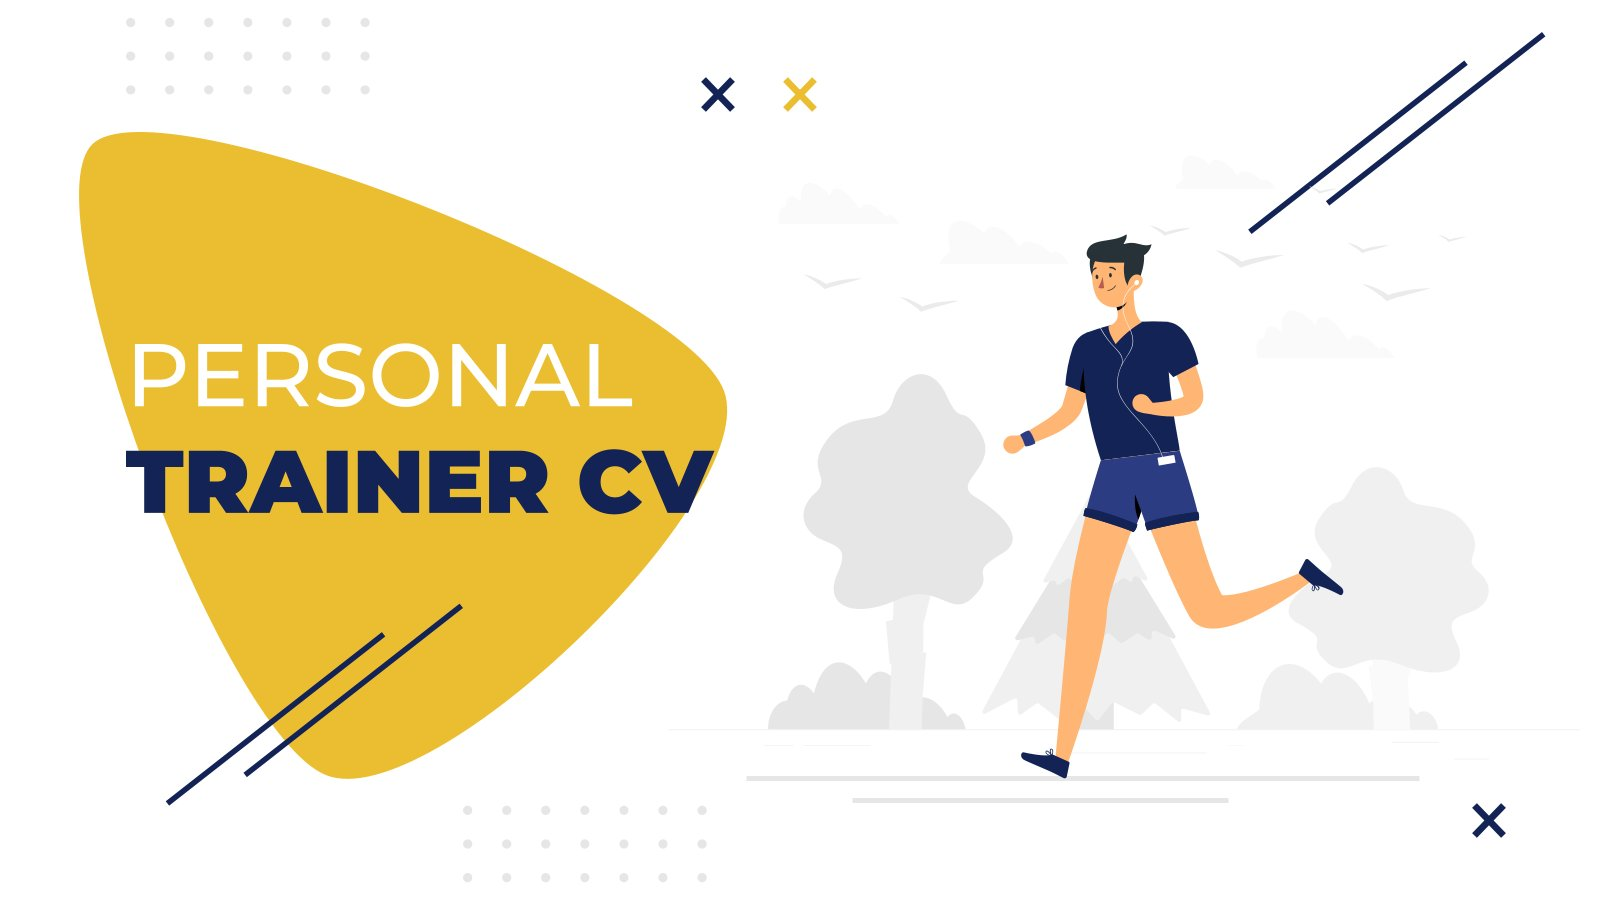 Personal Trainer CV presentation template